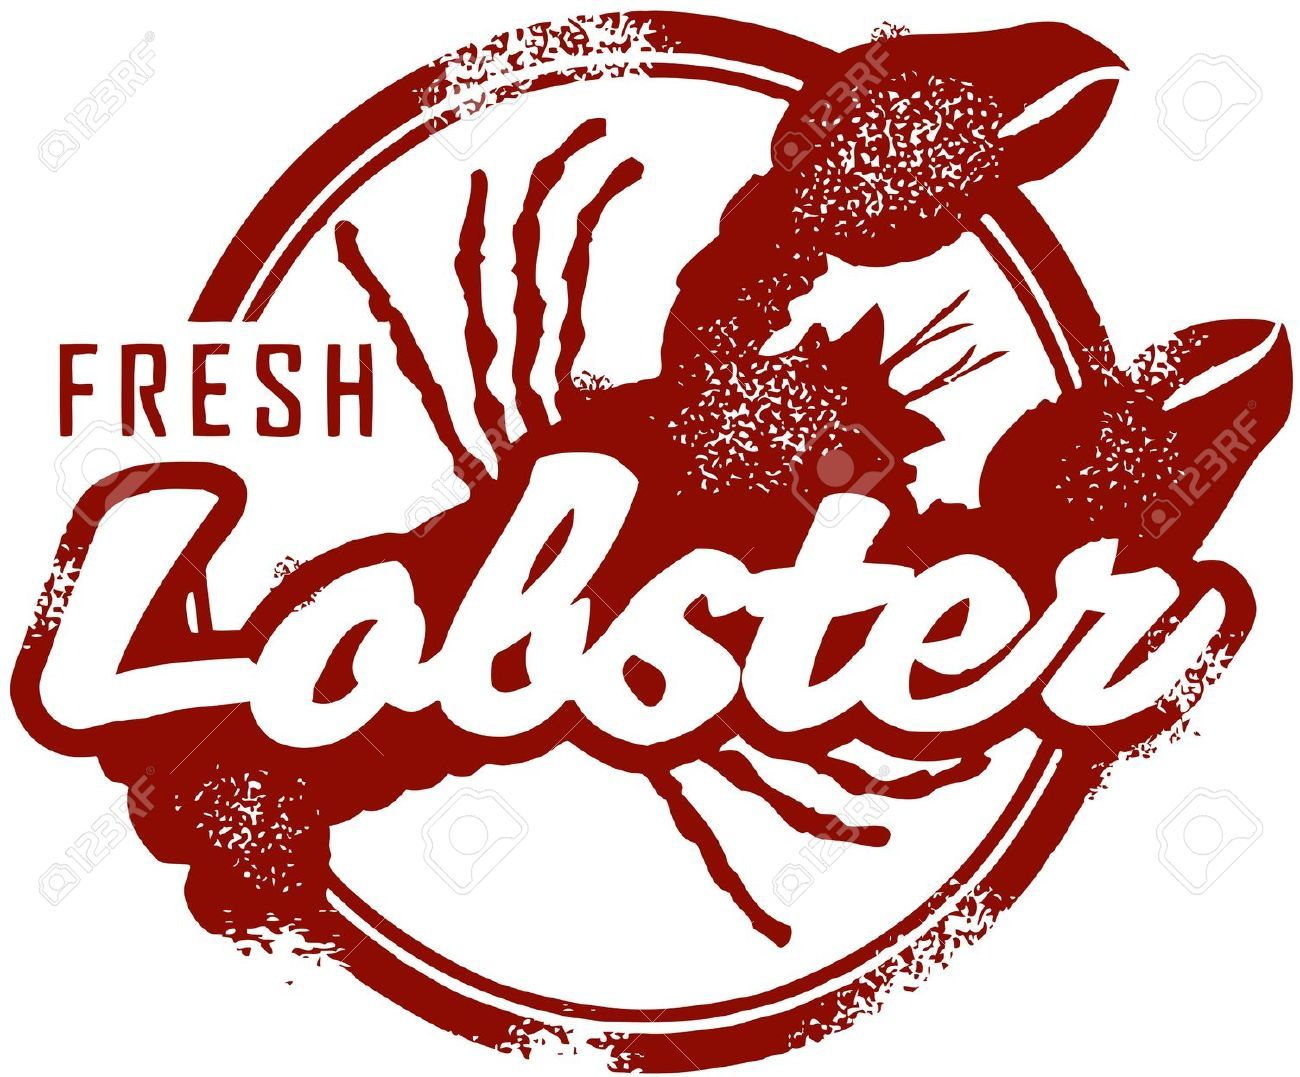 Map Pin In A Map Free Vector Instantshift Beautiful Free: Lobster Stock Vector Illustration And Royalty Free Lobster